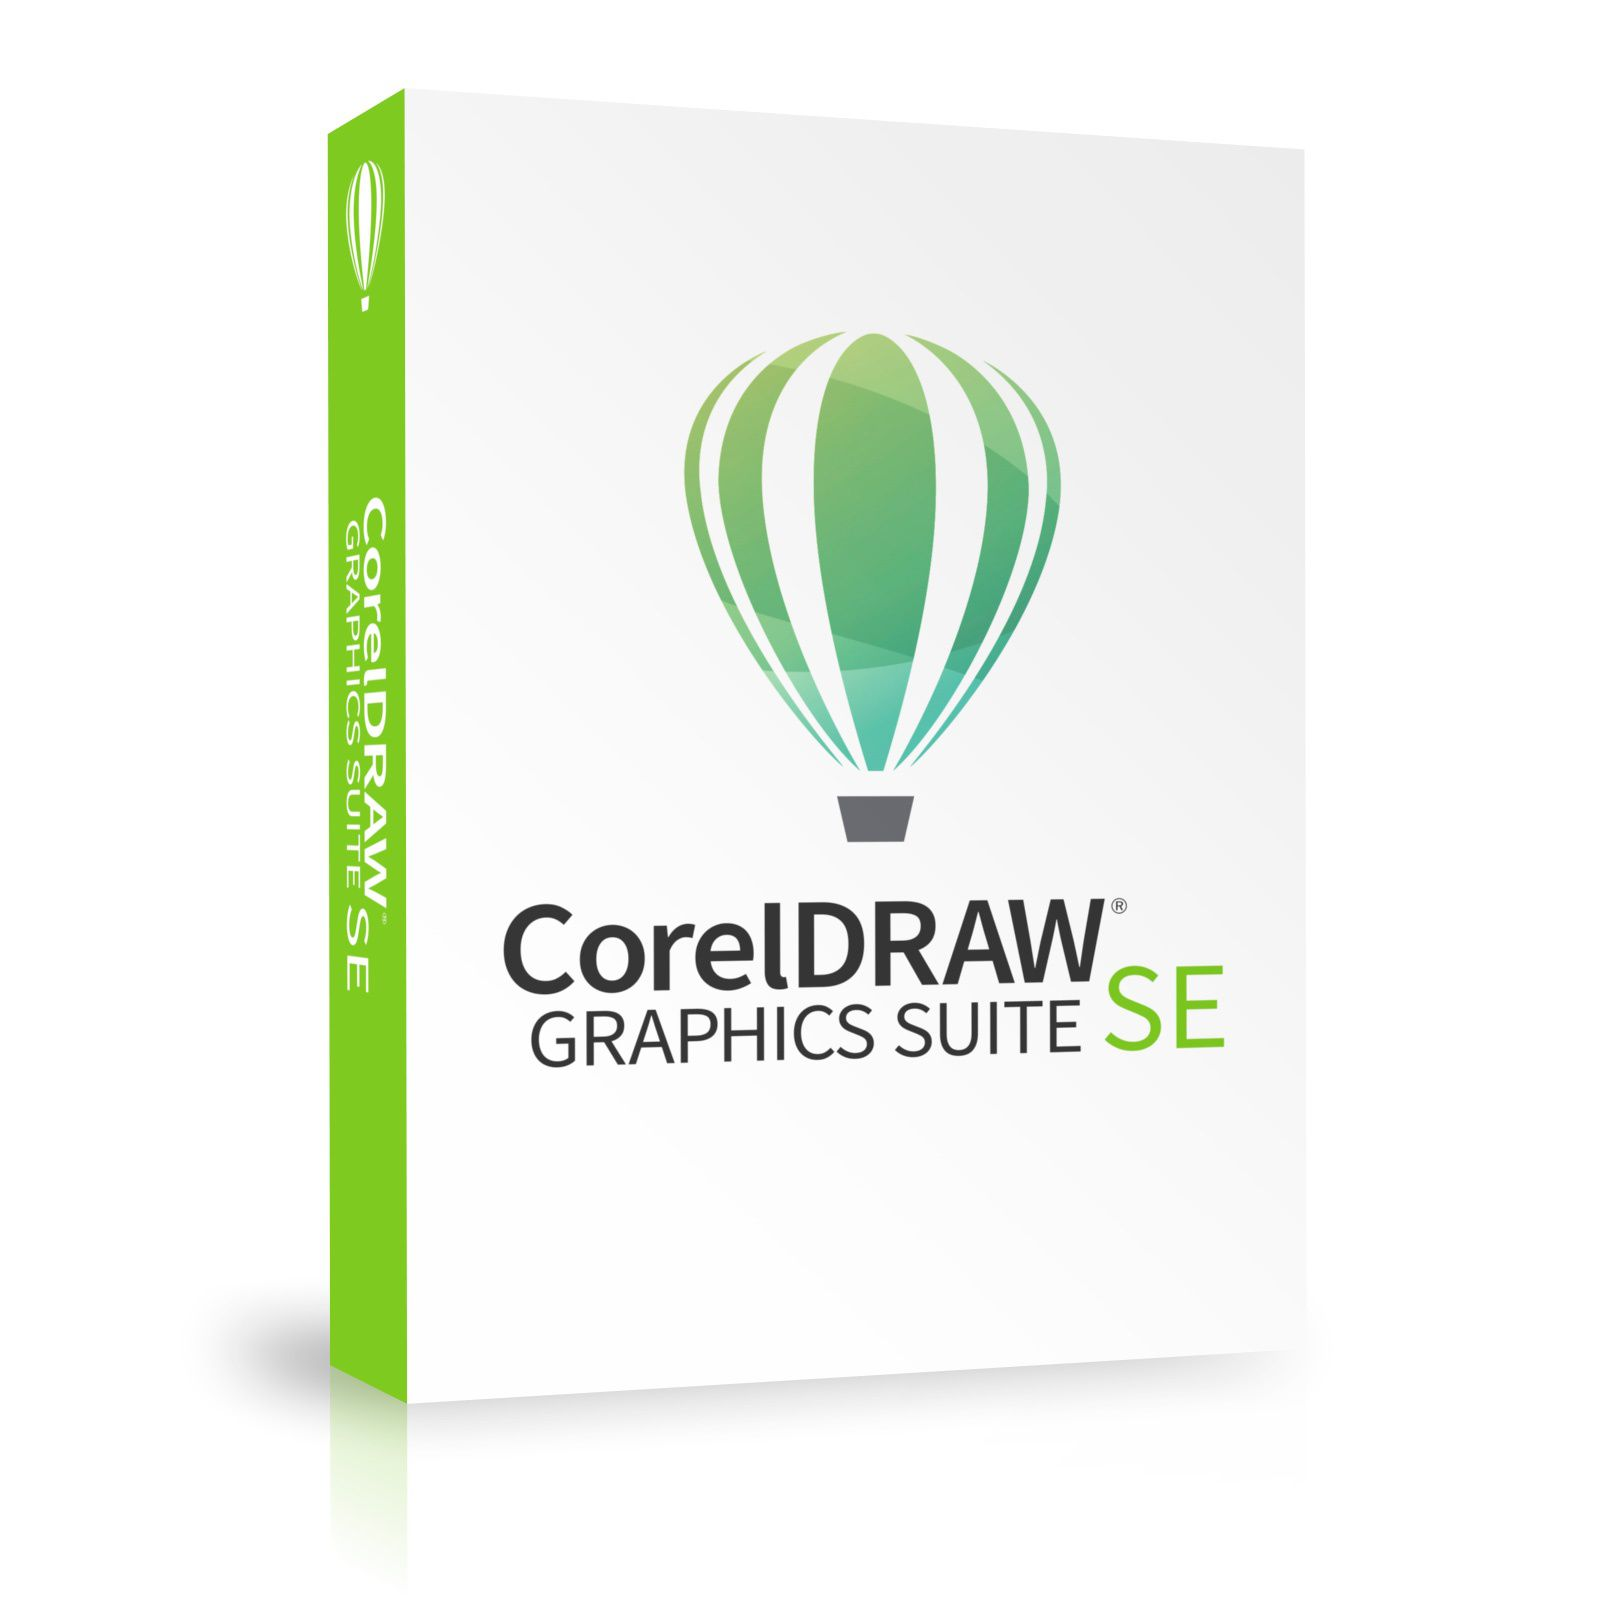 CorelDRAW Graphics Suite SE 2019